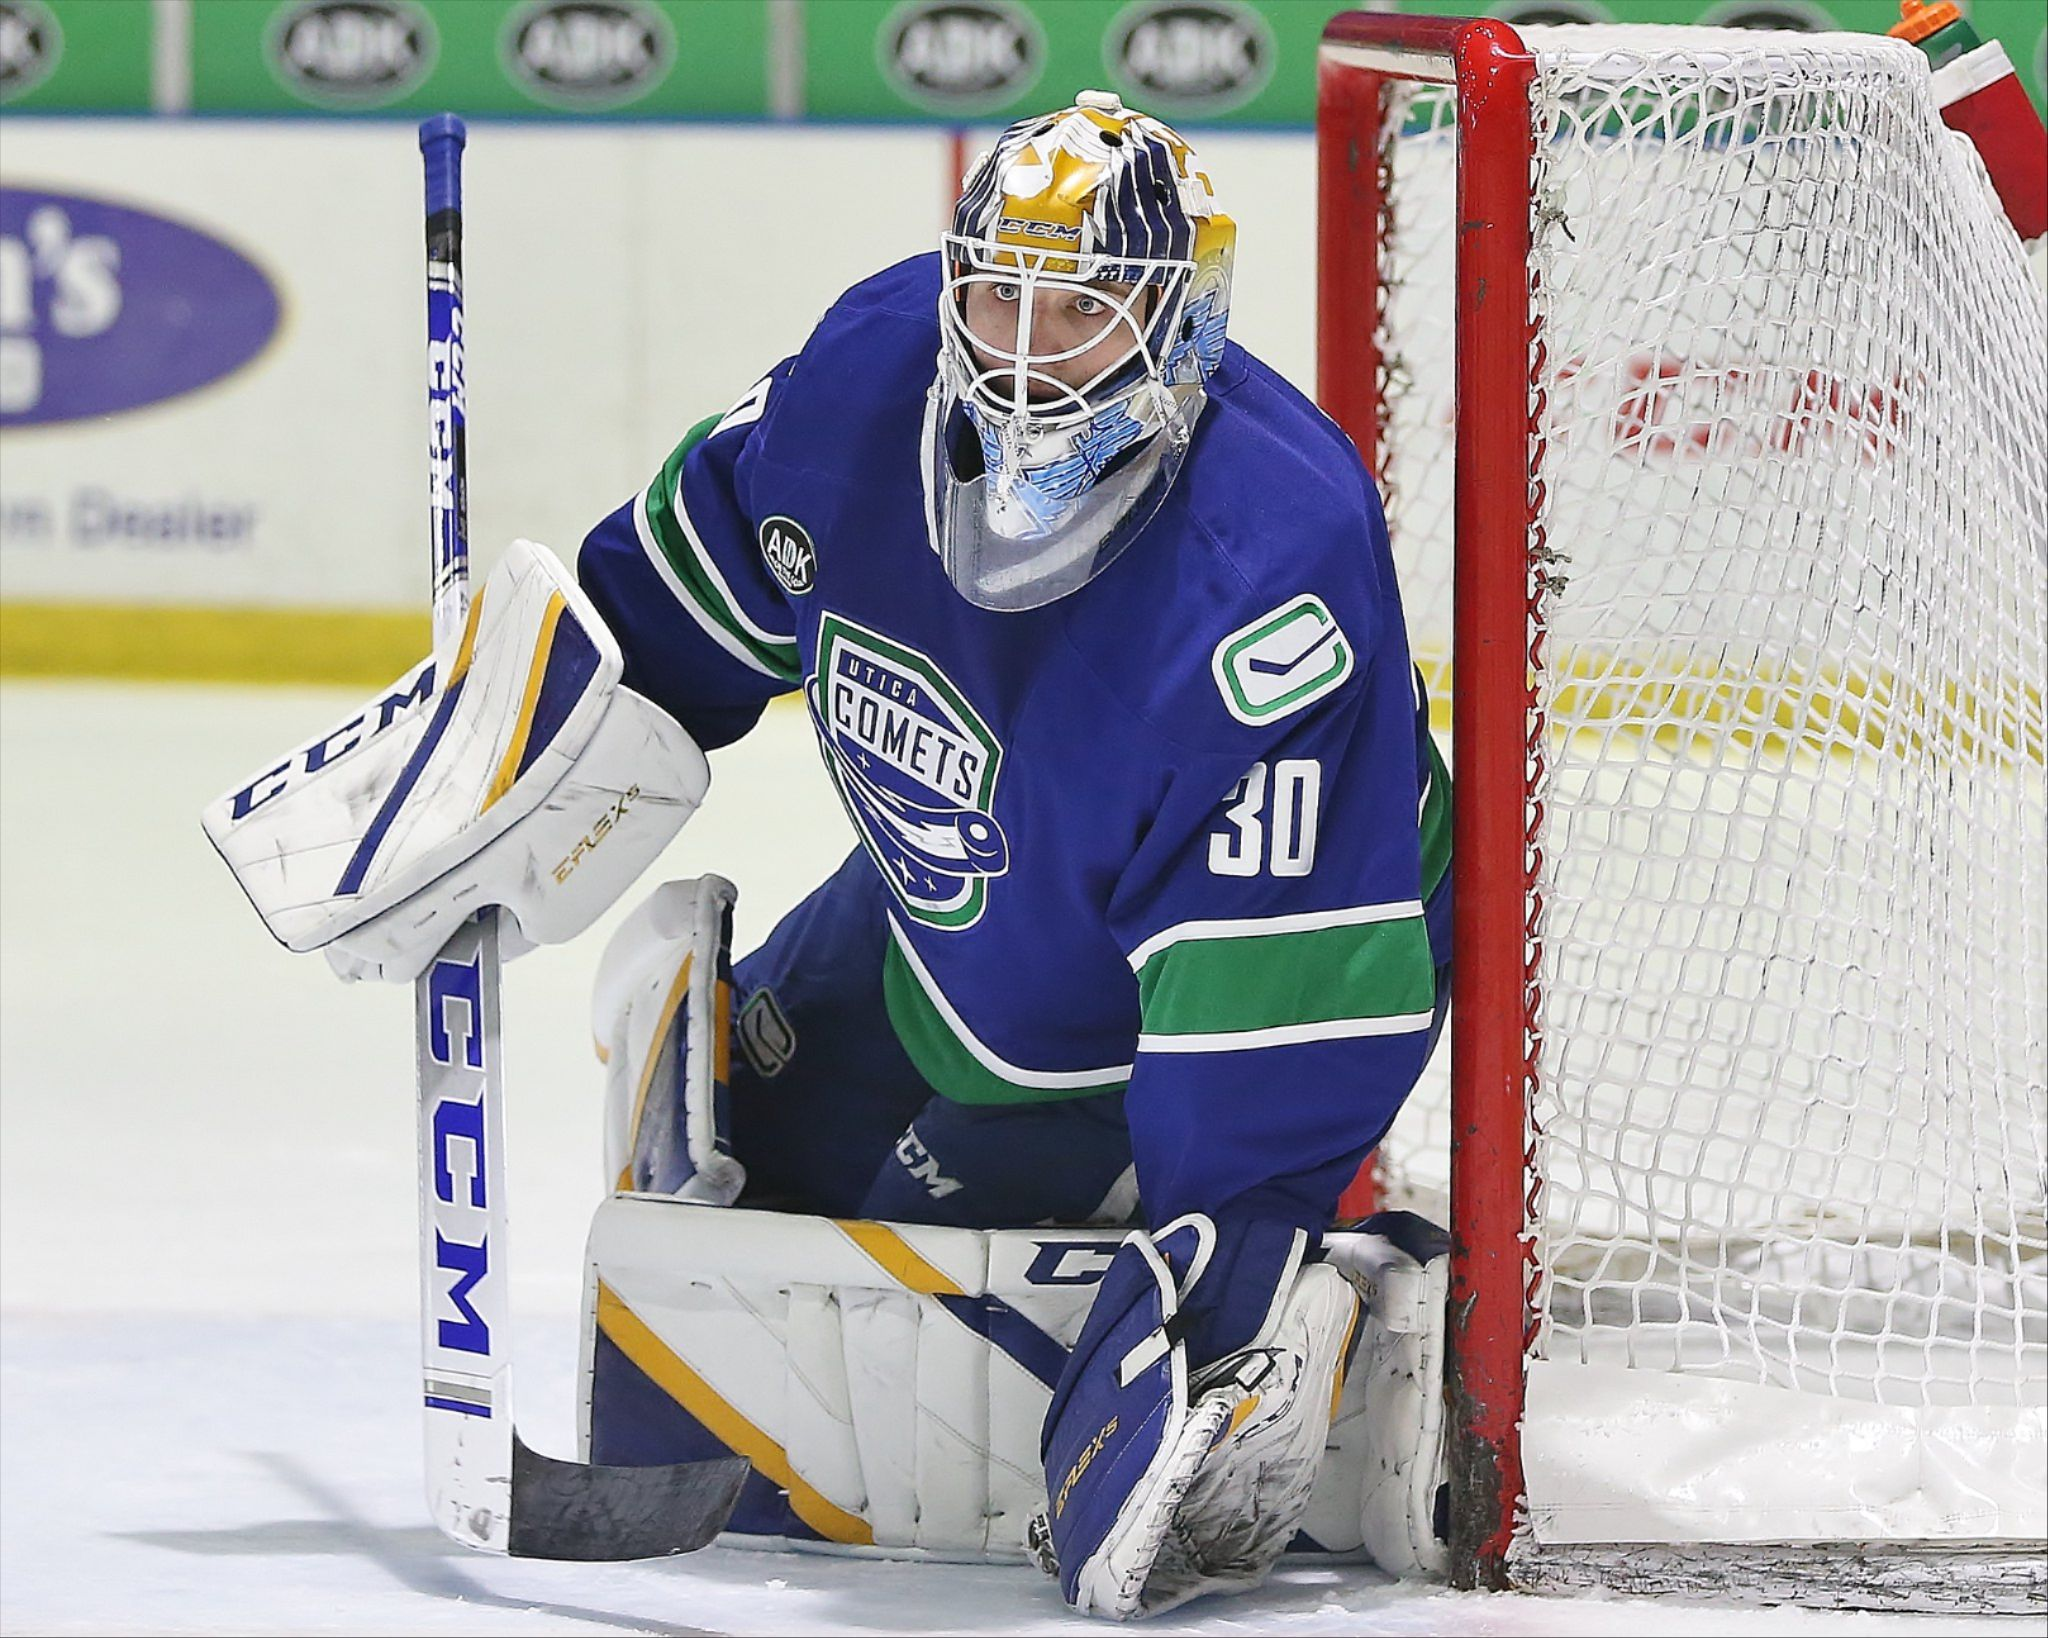 COMETS DOWN CRUNCH IN HOFER'S FIRST WIN